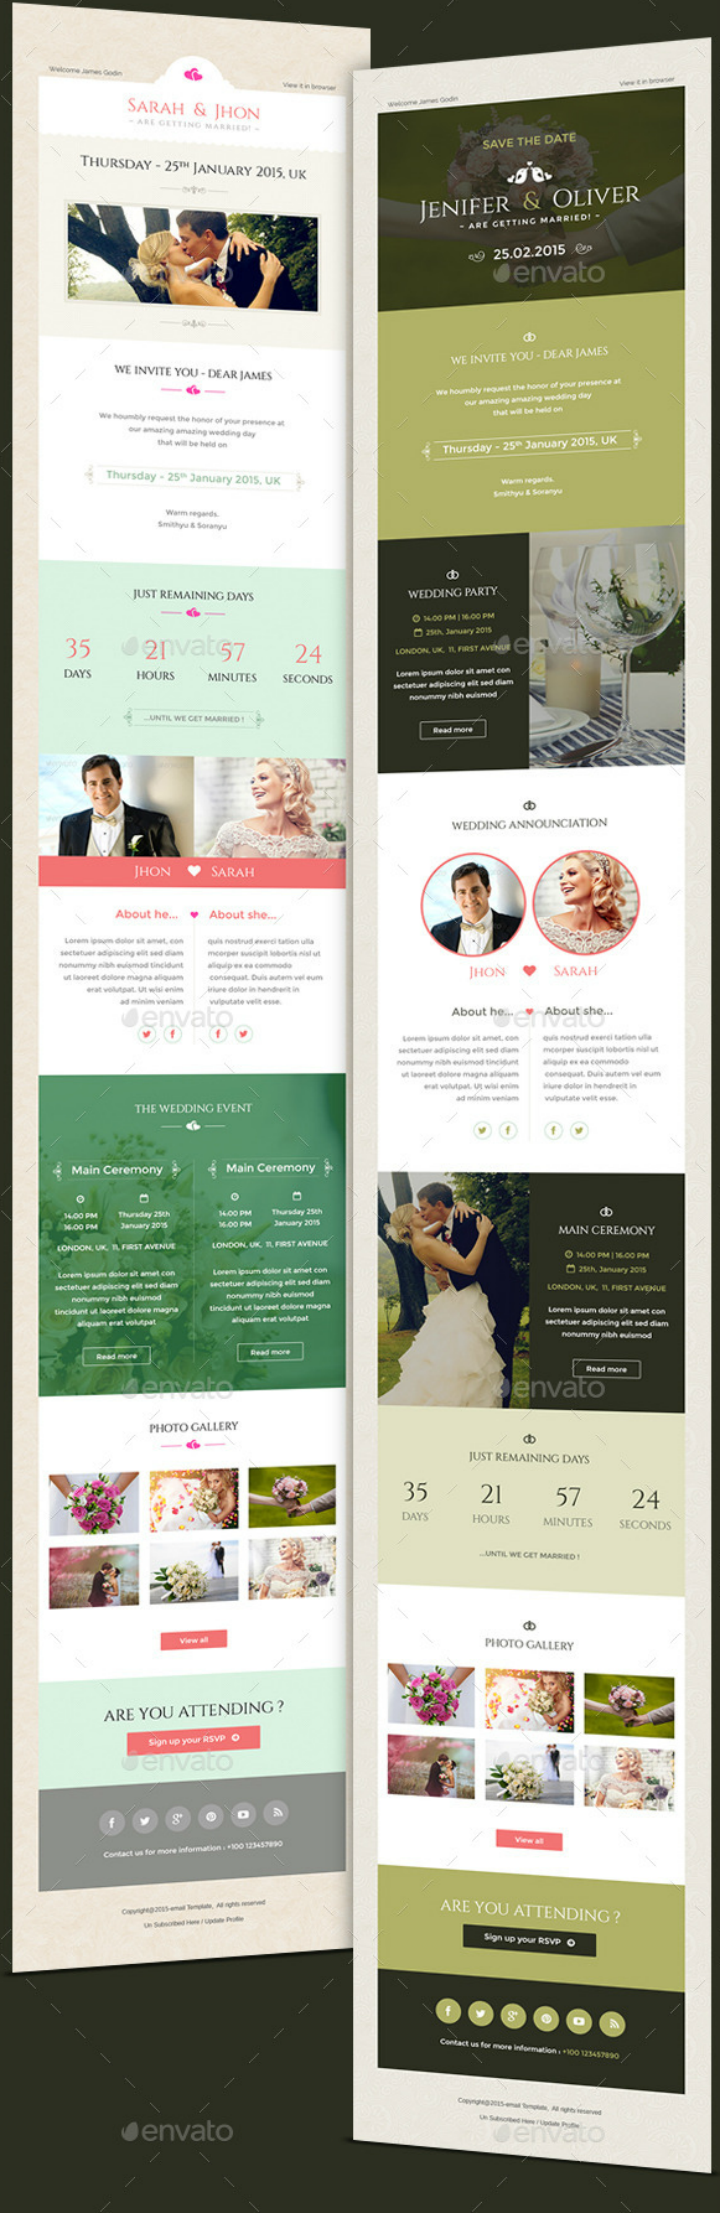 psd-wedding-invitation-email-template